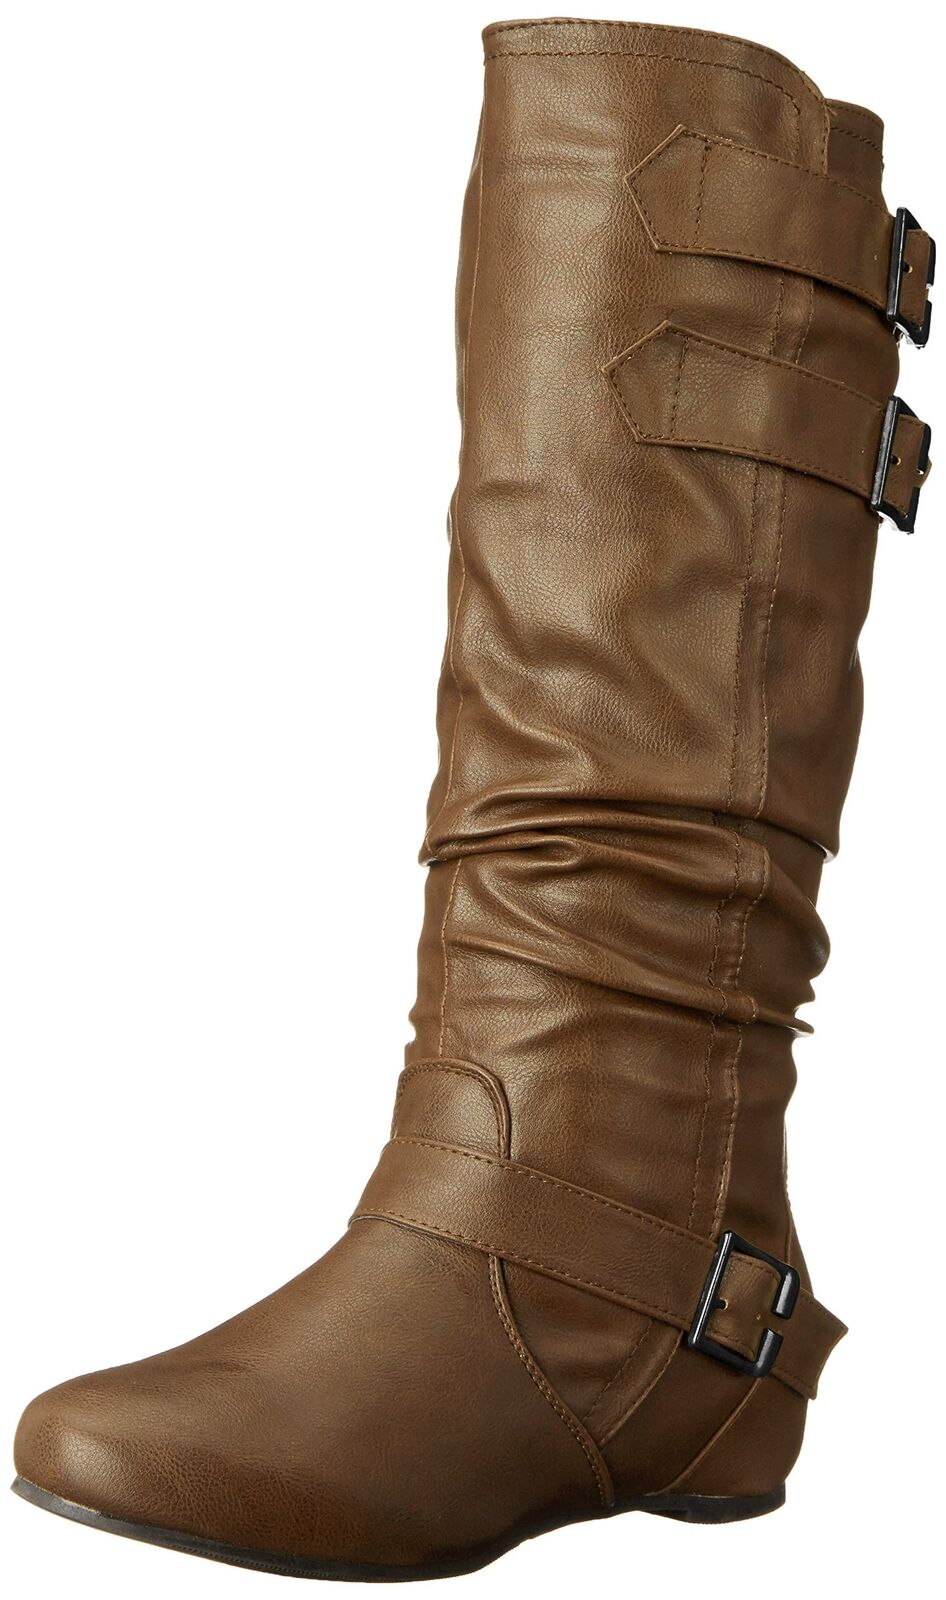 Brinley Co Women's Cammie-WC Slouch Boot Taupe Size 10